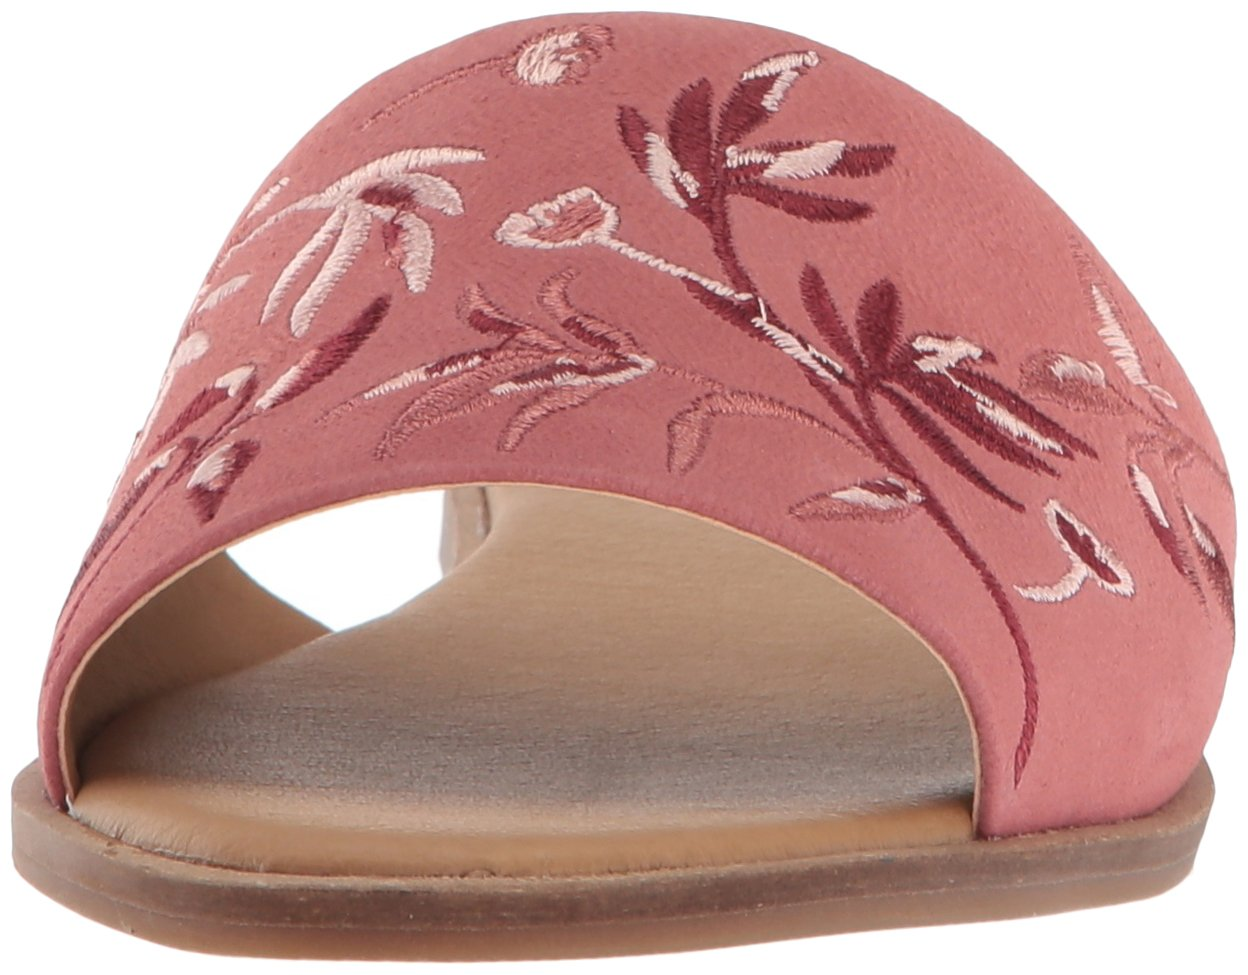 Lucky Brand Women's Davin Slide Sandal B077GF1TM1 5.5 M US|Canyon Rose